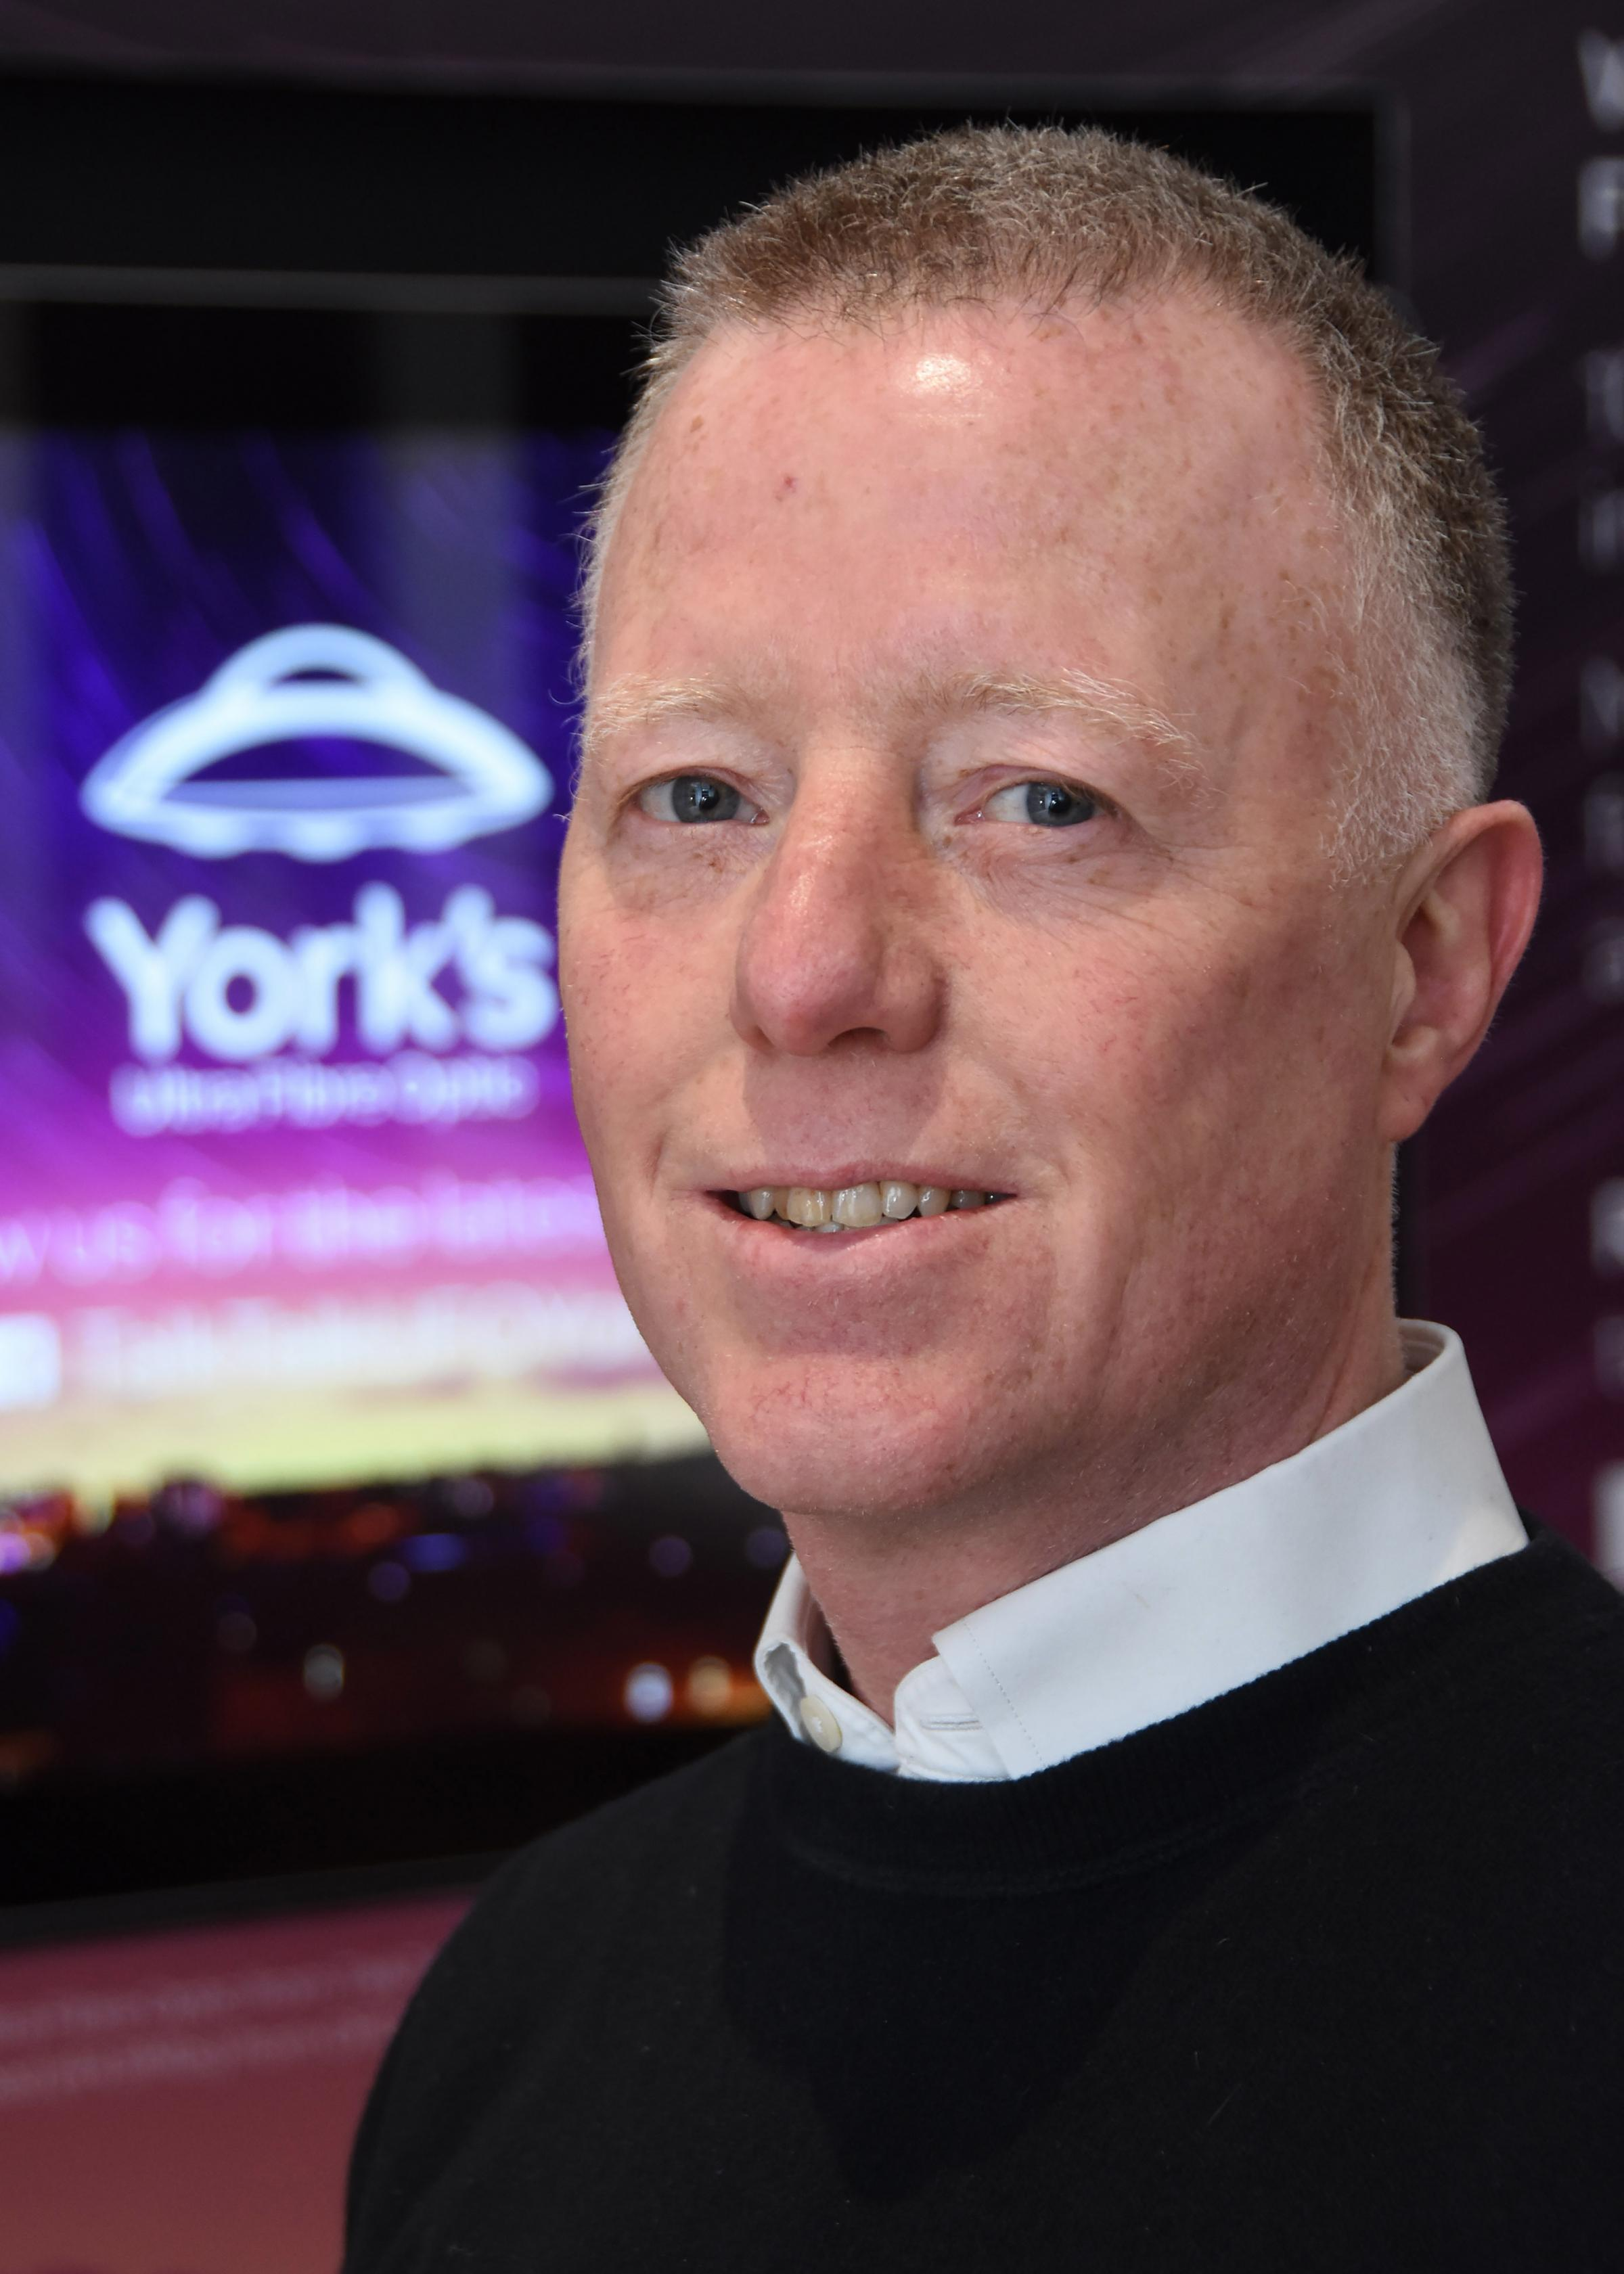 Paul Crane Head of Ultrafast Engagement for Talk Talk Group pictured in the York's Ultra Fibre Optic from TalkTalk, new waiting room at York train station where people will be able to experience gigabit broadband speed. Picture David Harrison/TalkTa